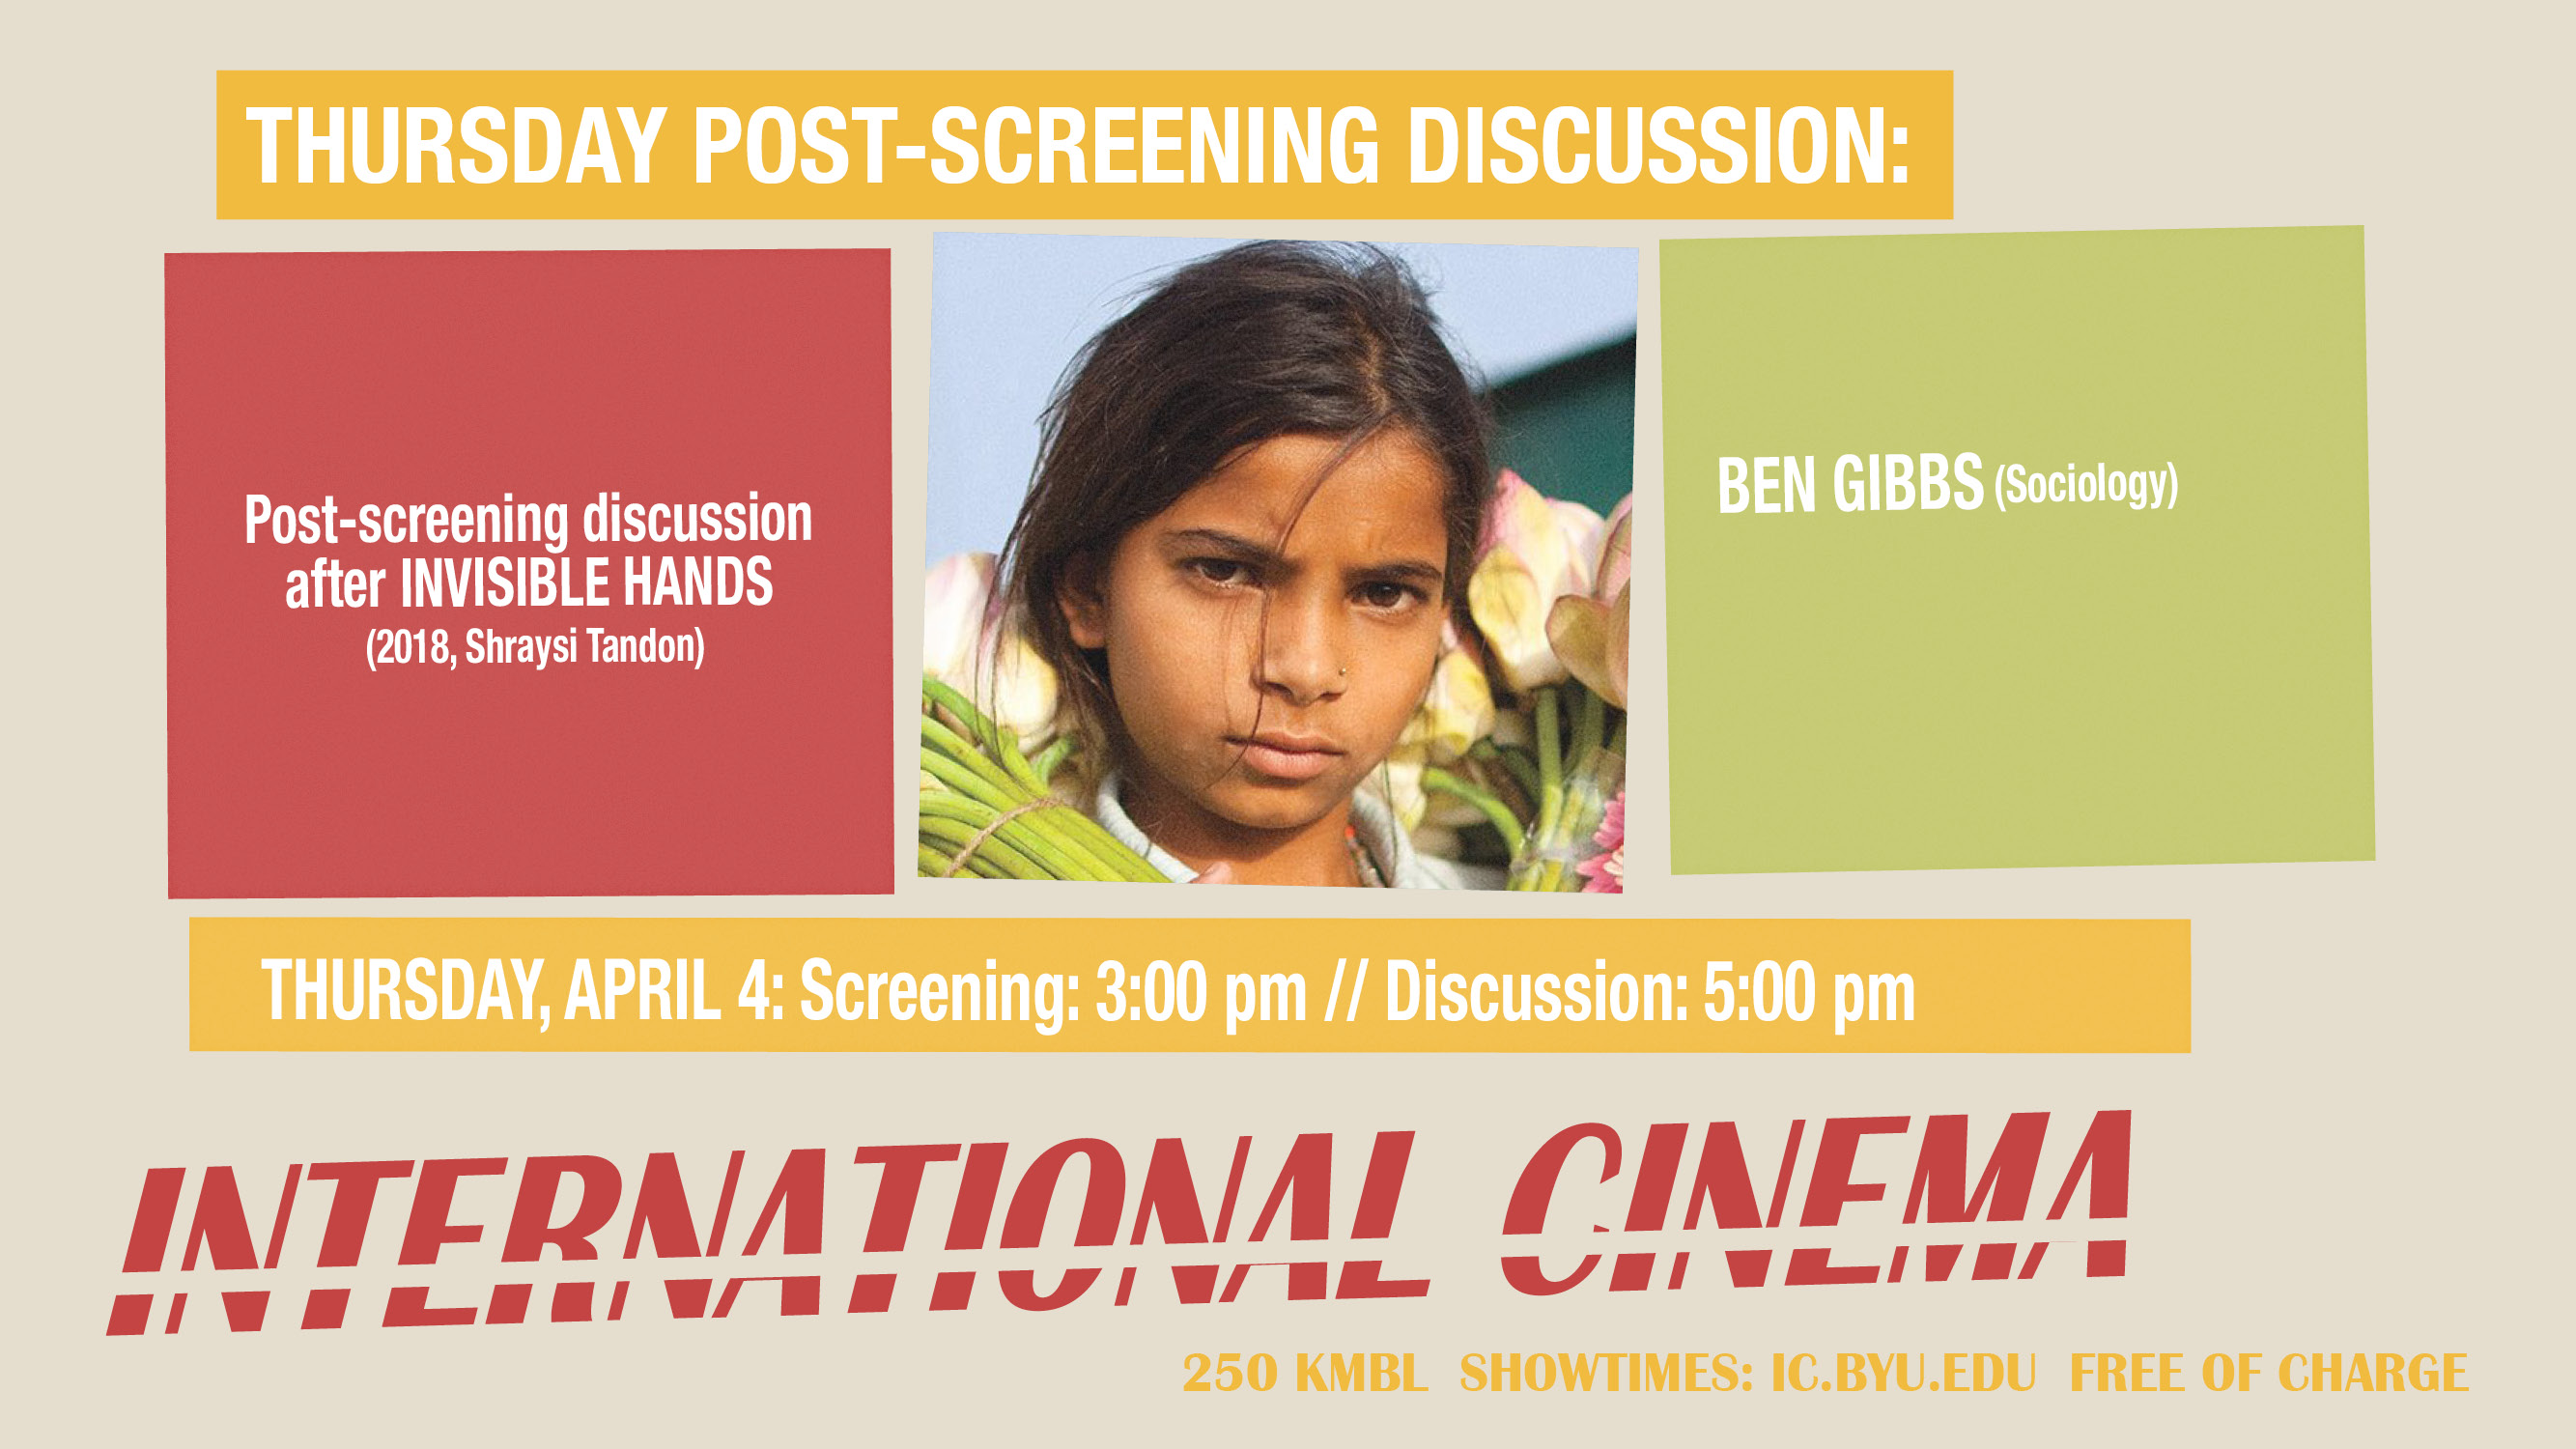 Post-Screening Discussion on Invisible Hands